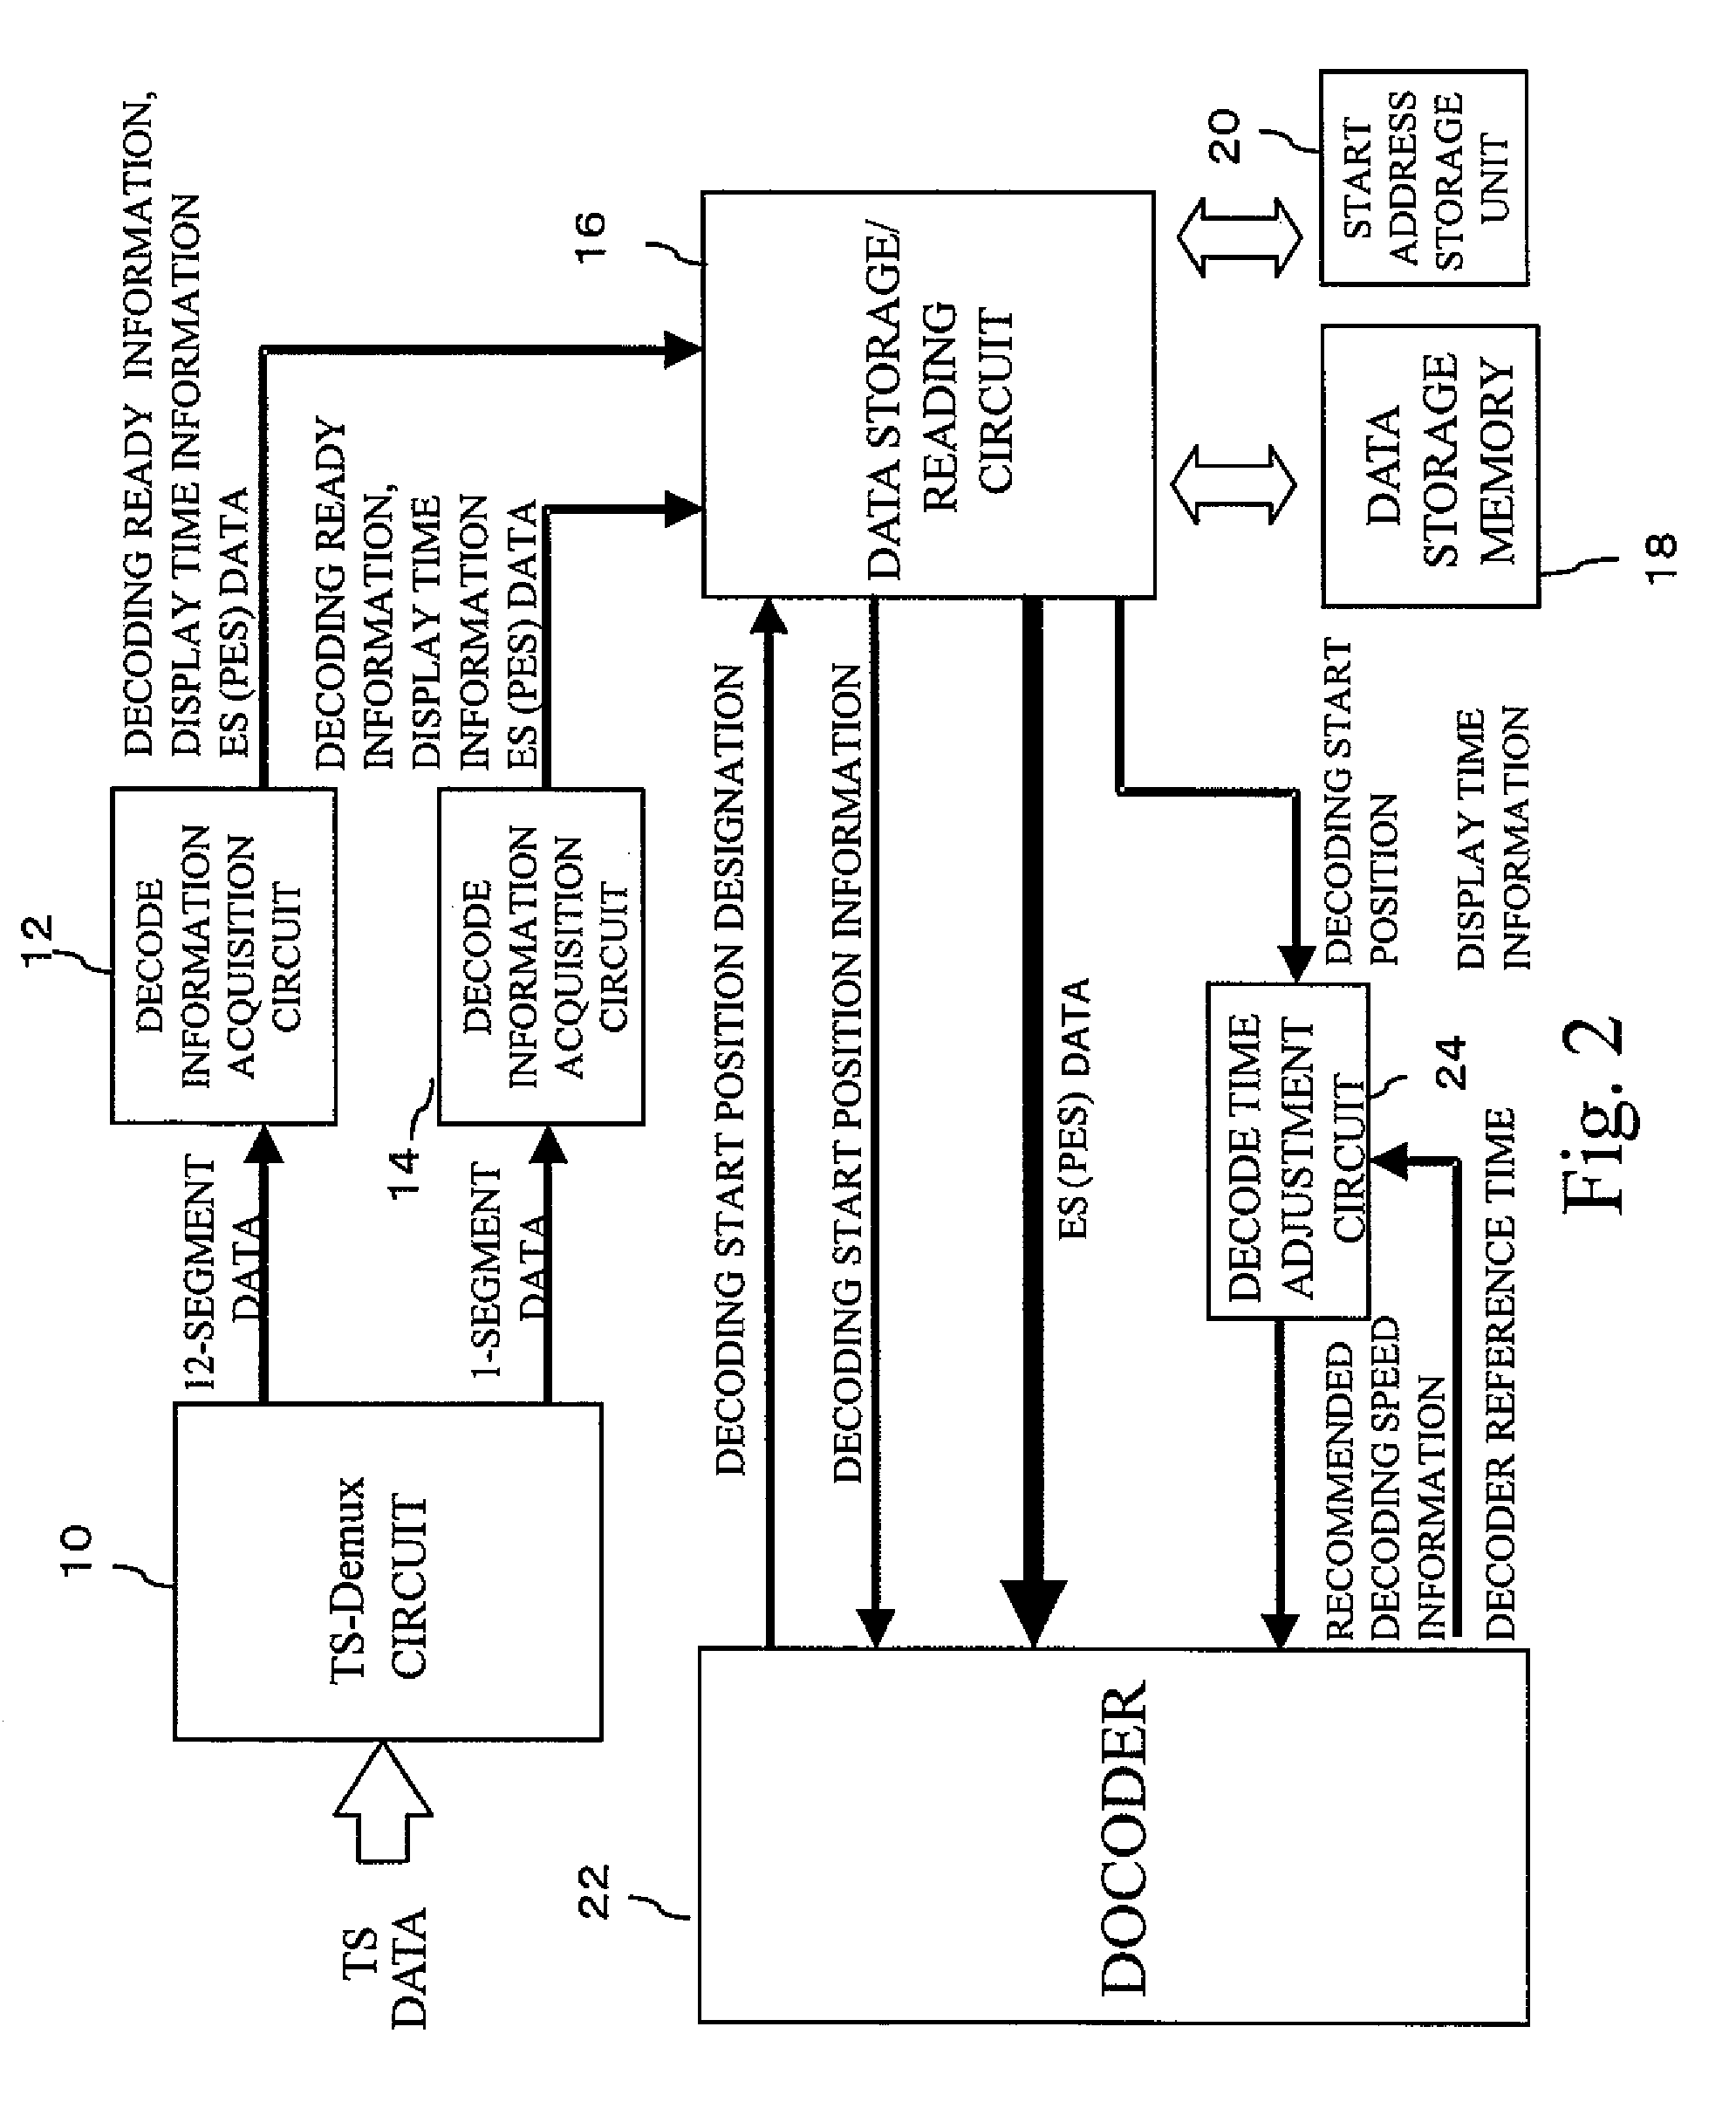 Patent Us8126018 Decoding Circuit Google Patents Reading Schematic Diagram Drawing